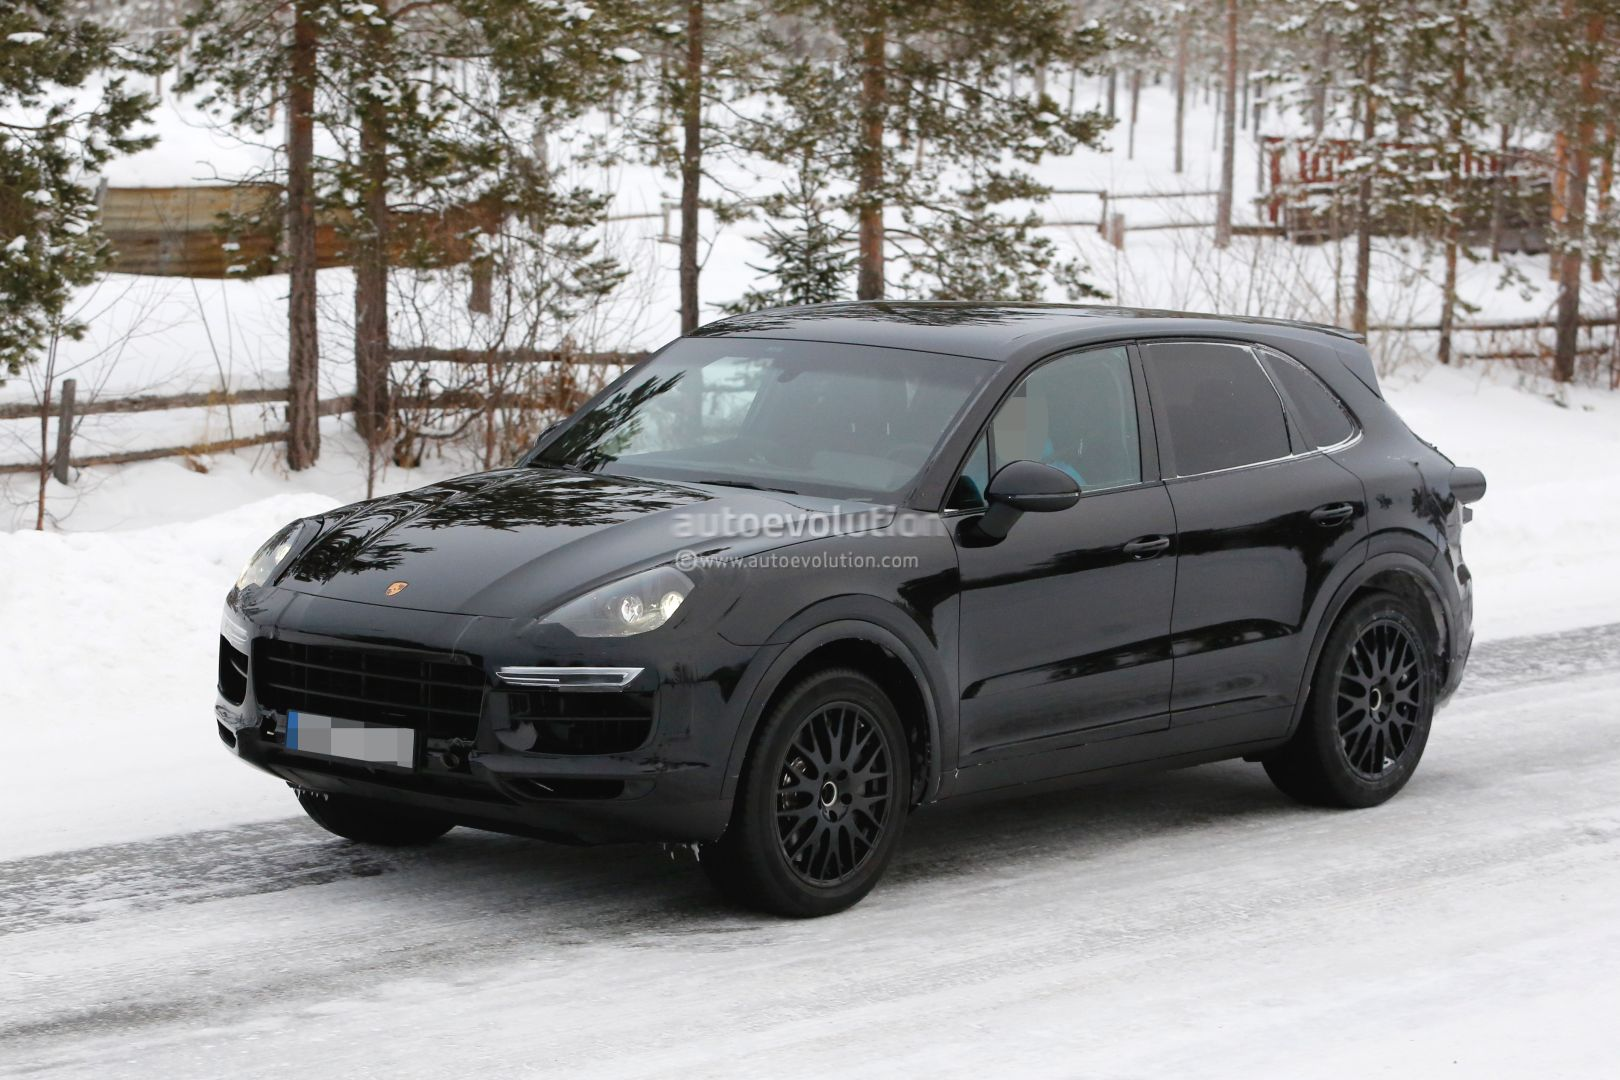 2018 porsche cayenne spied shows active rear spoiler autoevolution. Black Bedroom Furniture Sets. Home Design Ideas